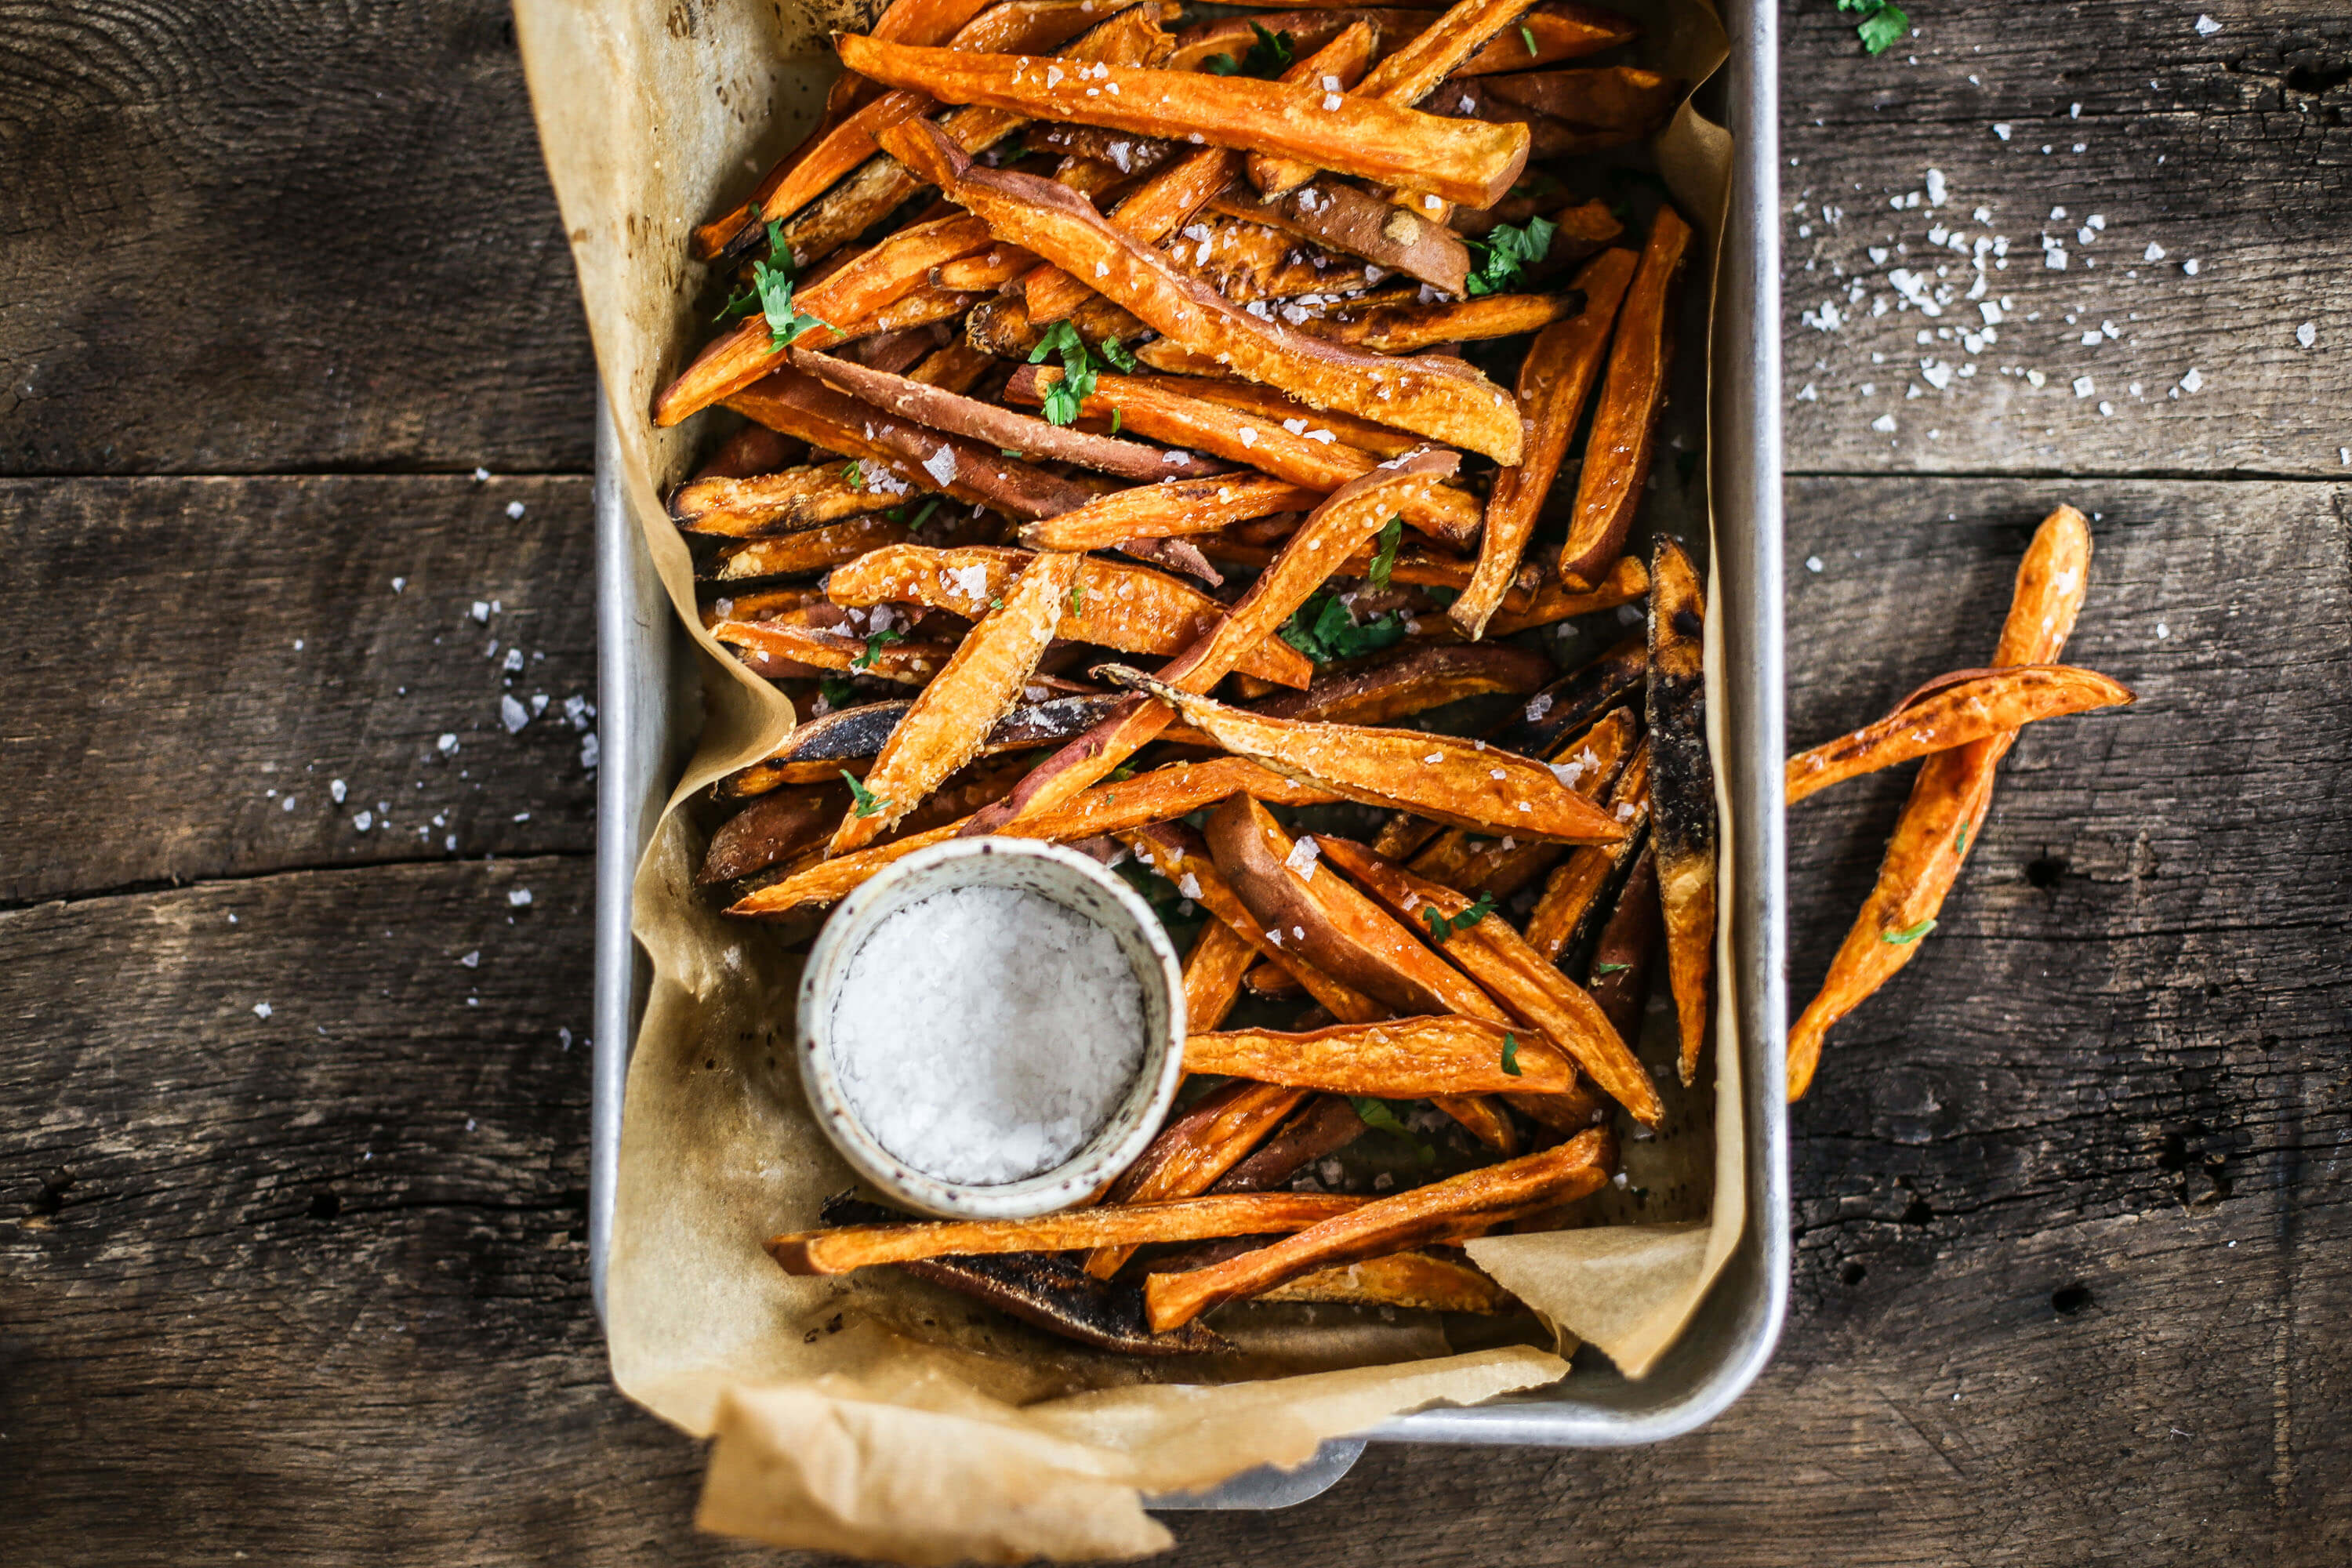 How to make sweet potato fries from scratch